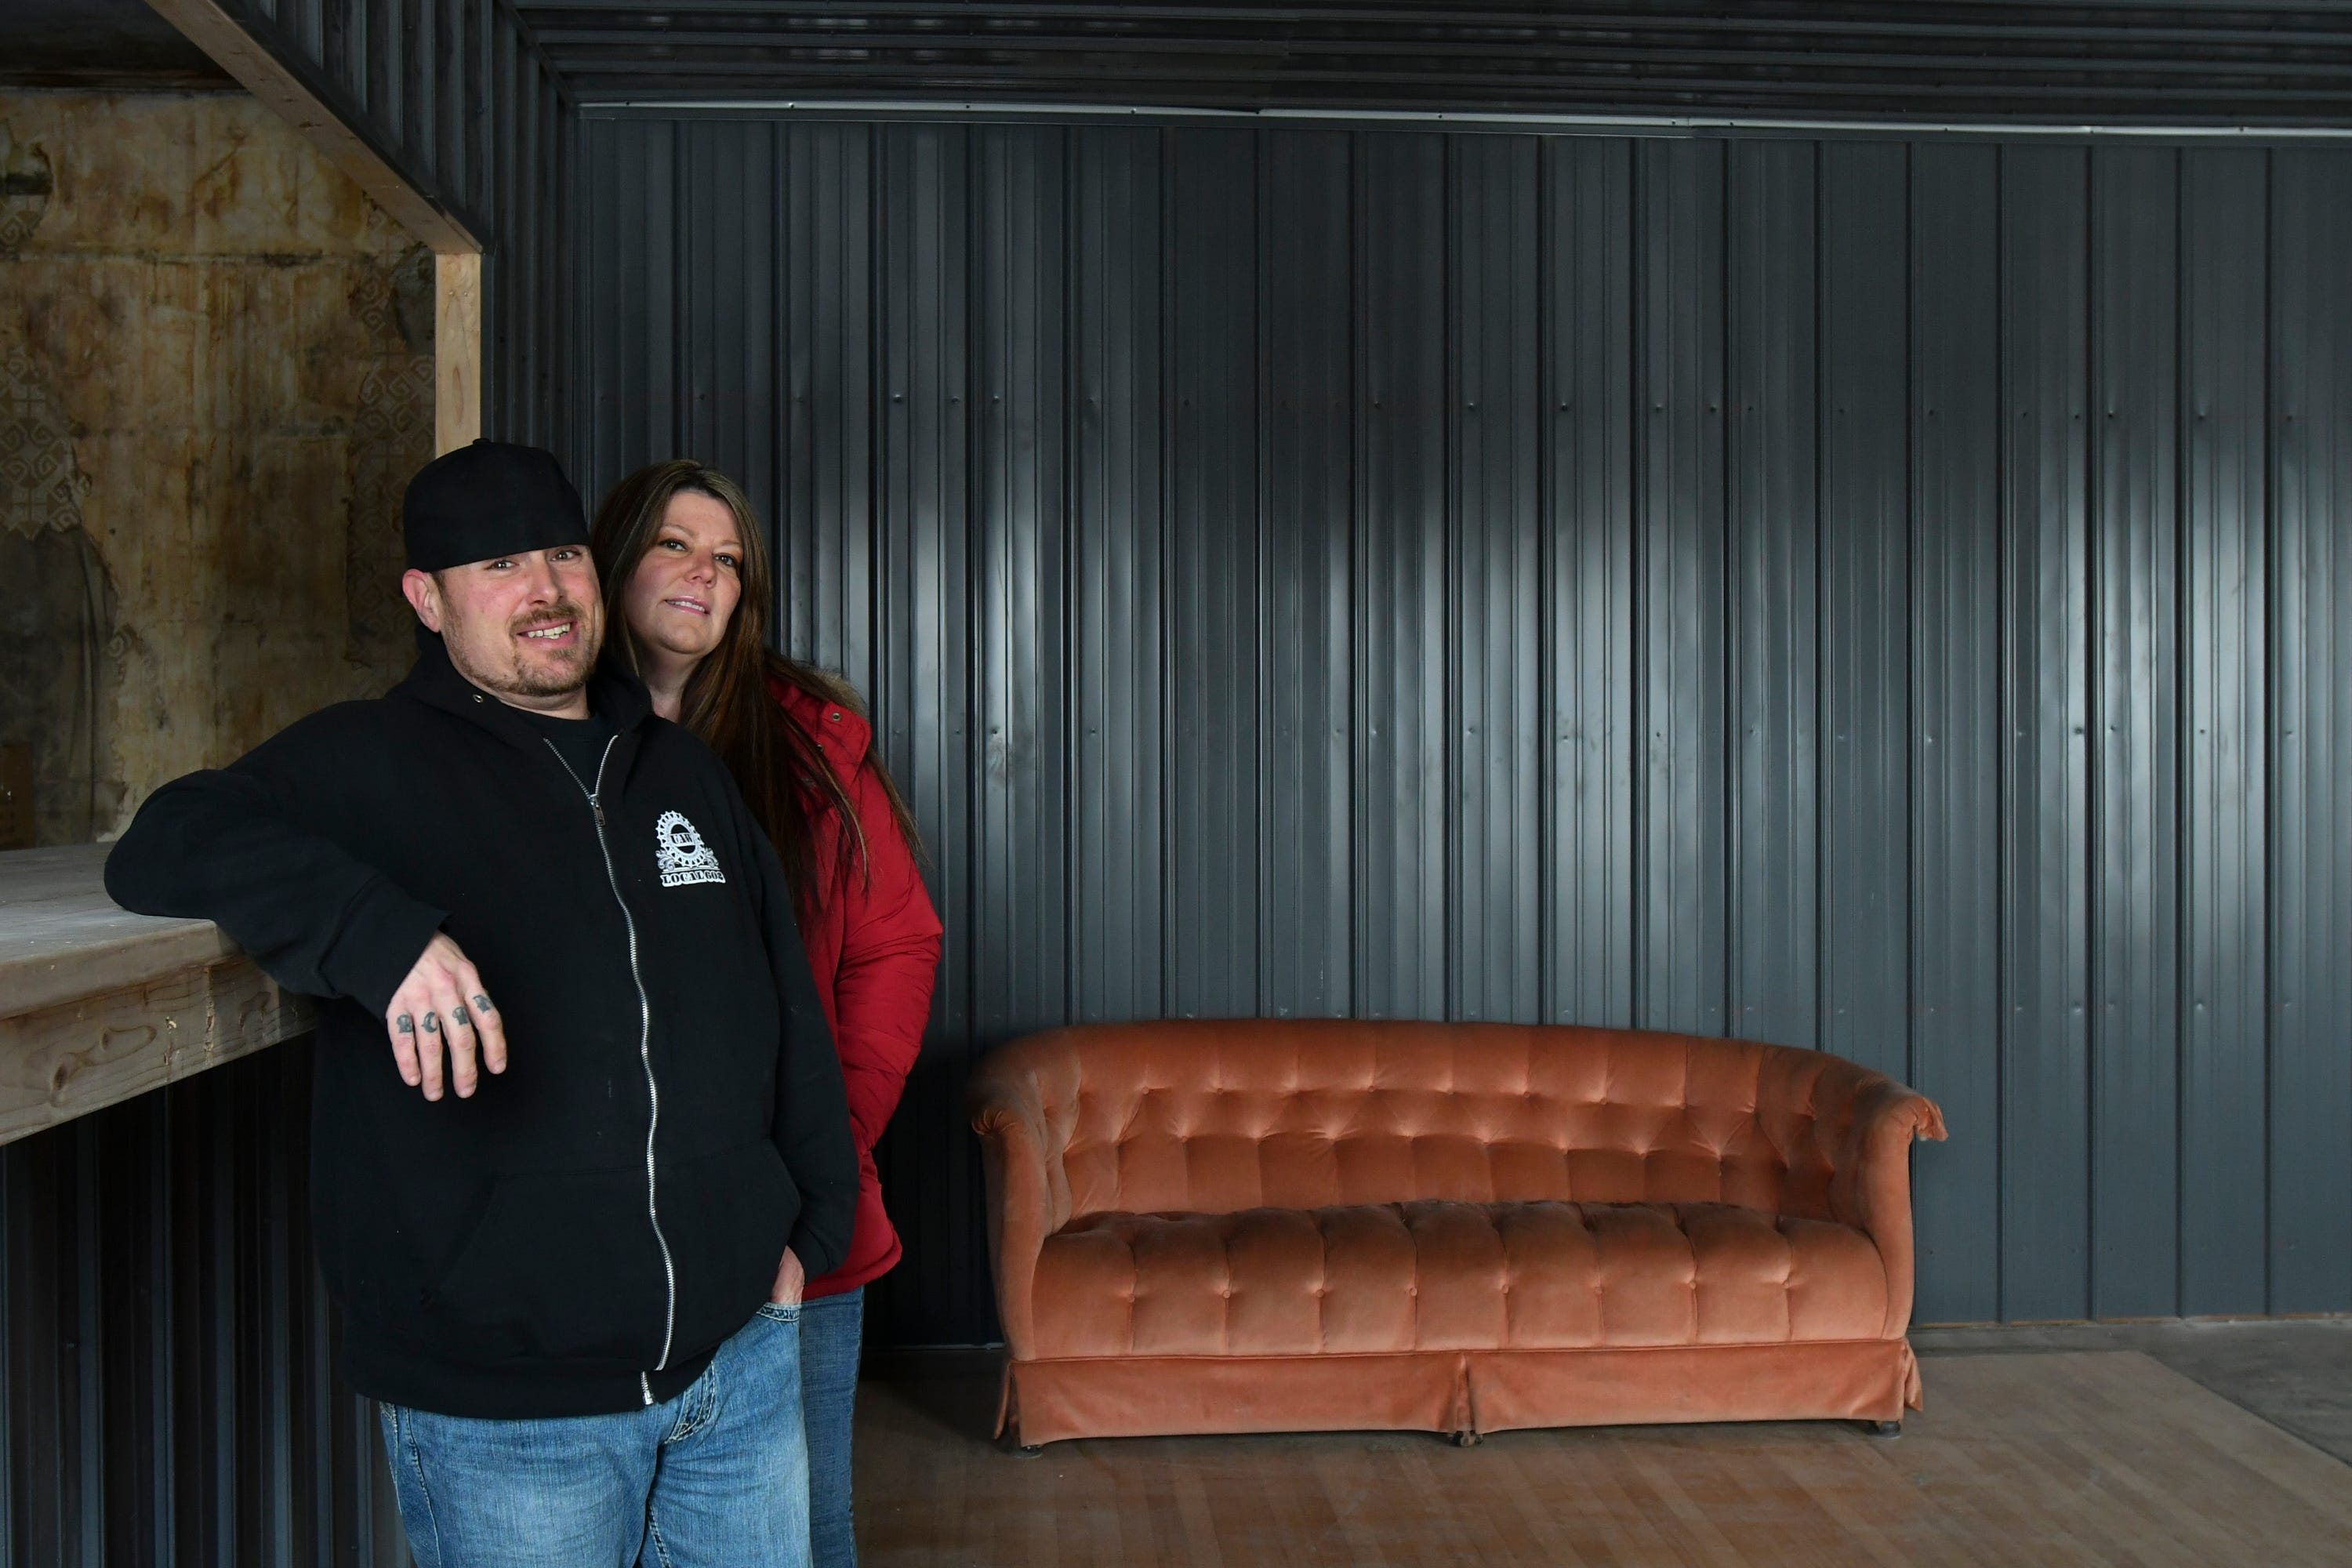 Mike Karl and Cynthia Bell are co-founders of Doobie's, a private marijuana social club that closed last month in Elsie. They plan to open a new location soon.